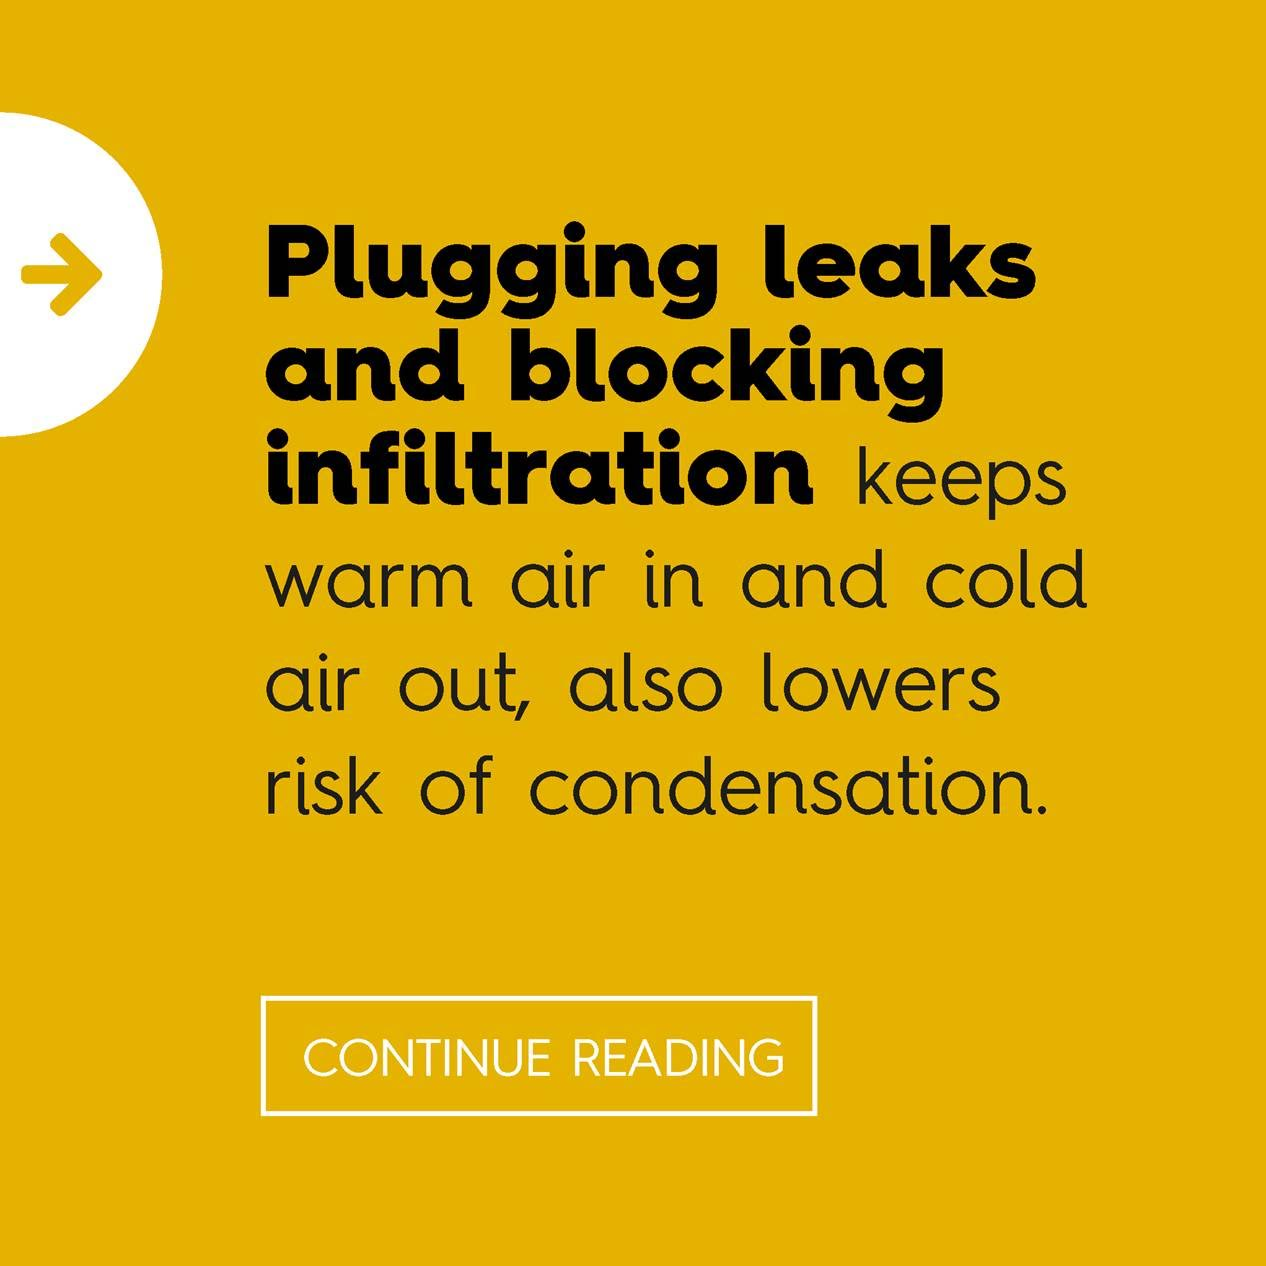 Plugging leaks and blocking infiltration